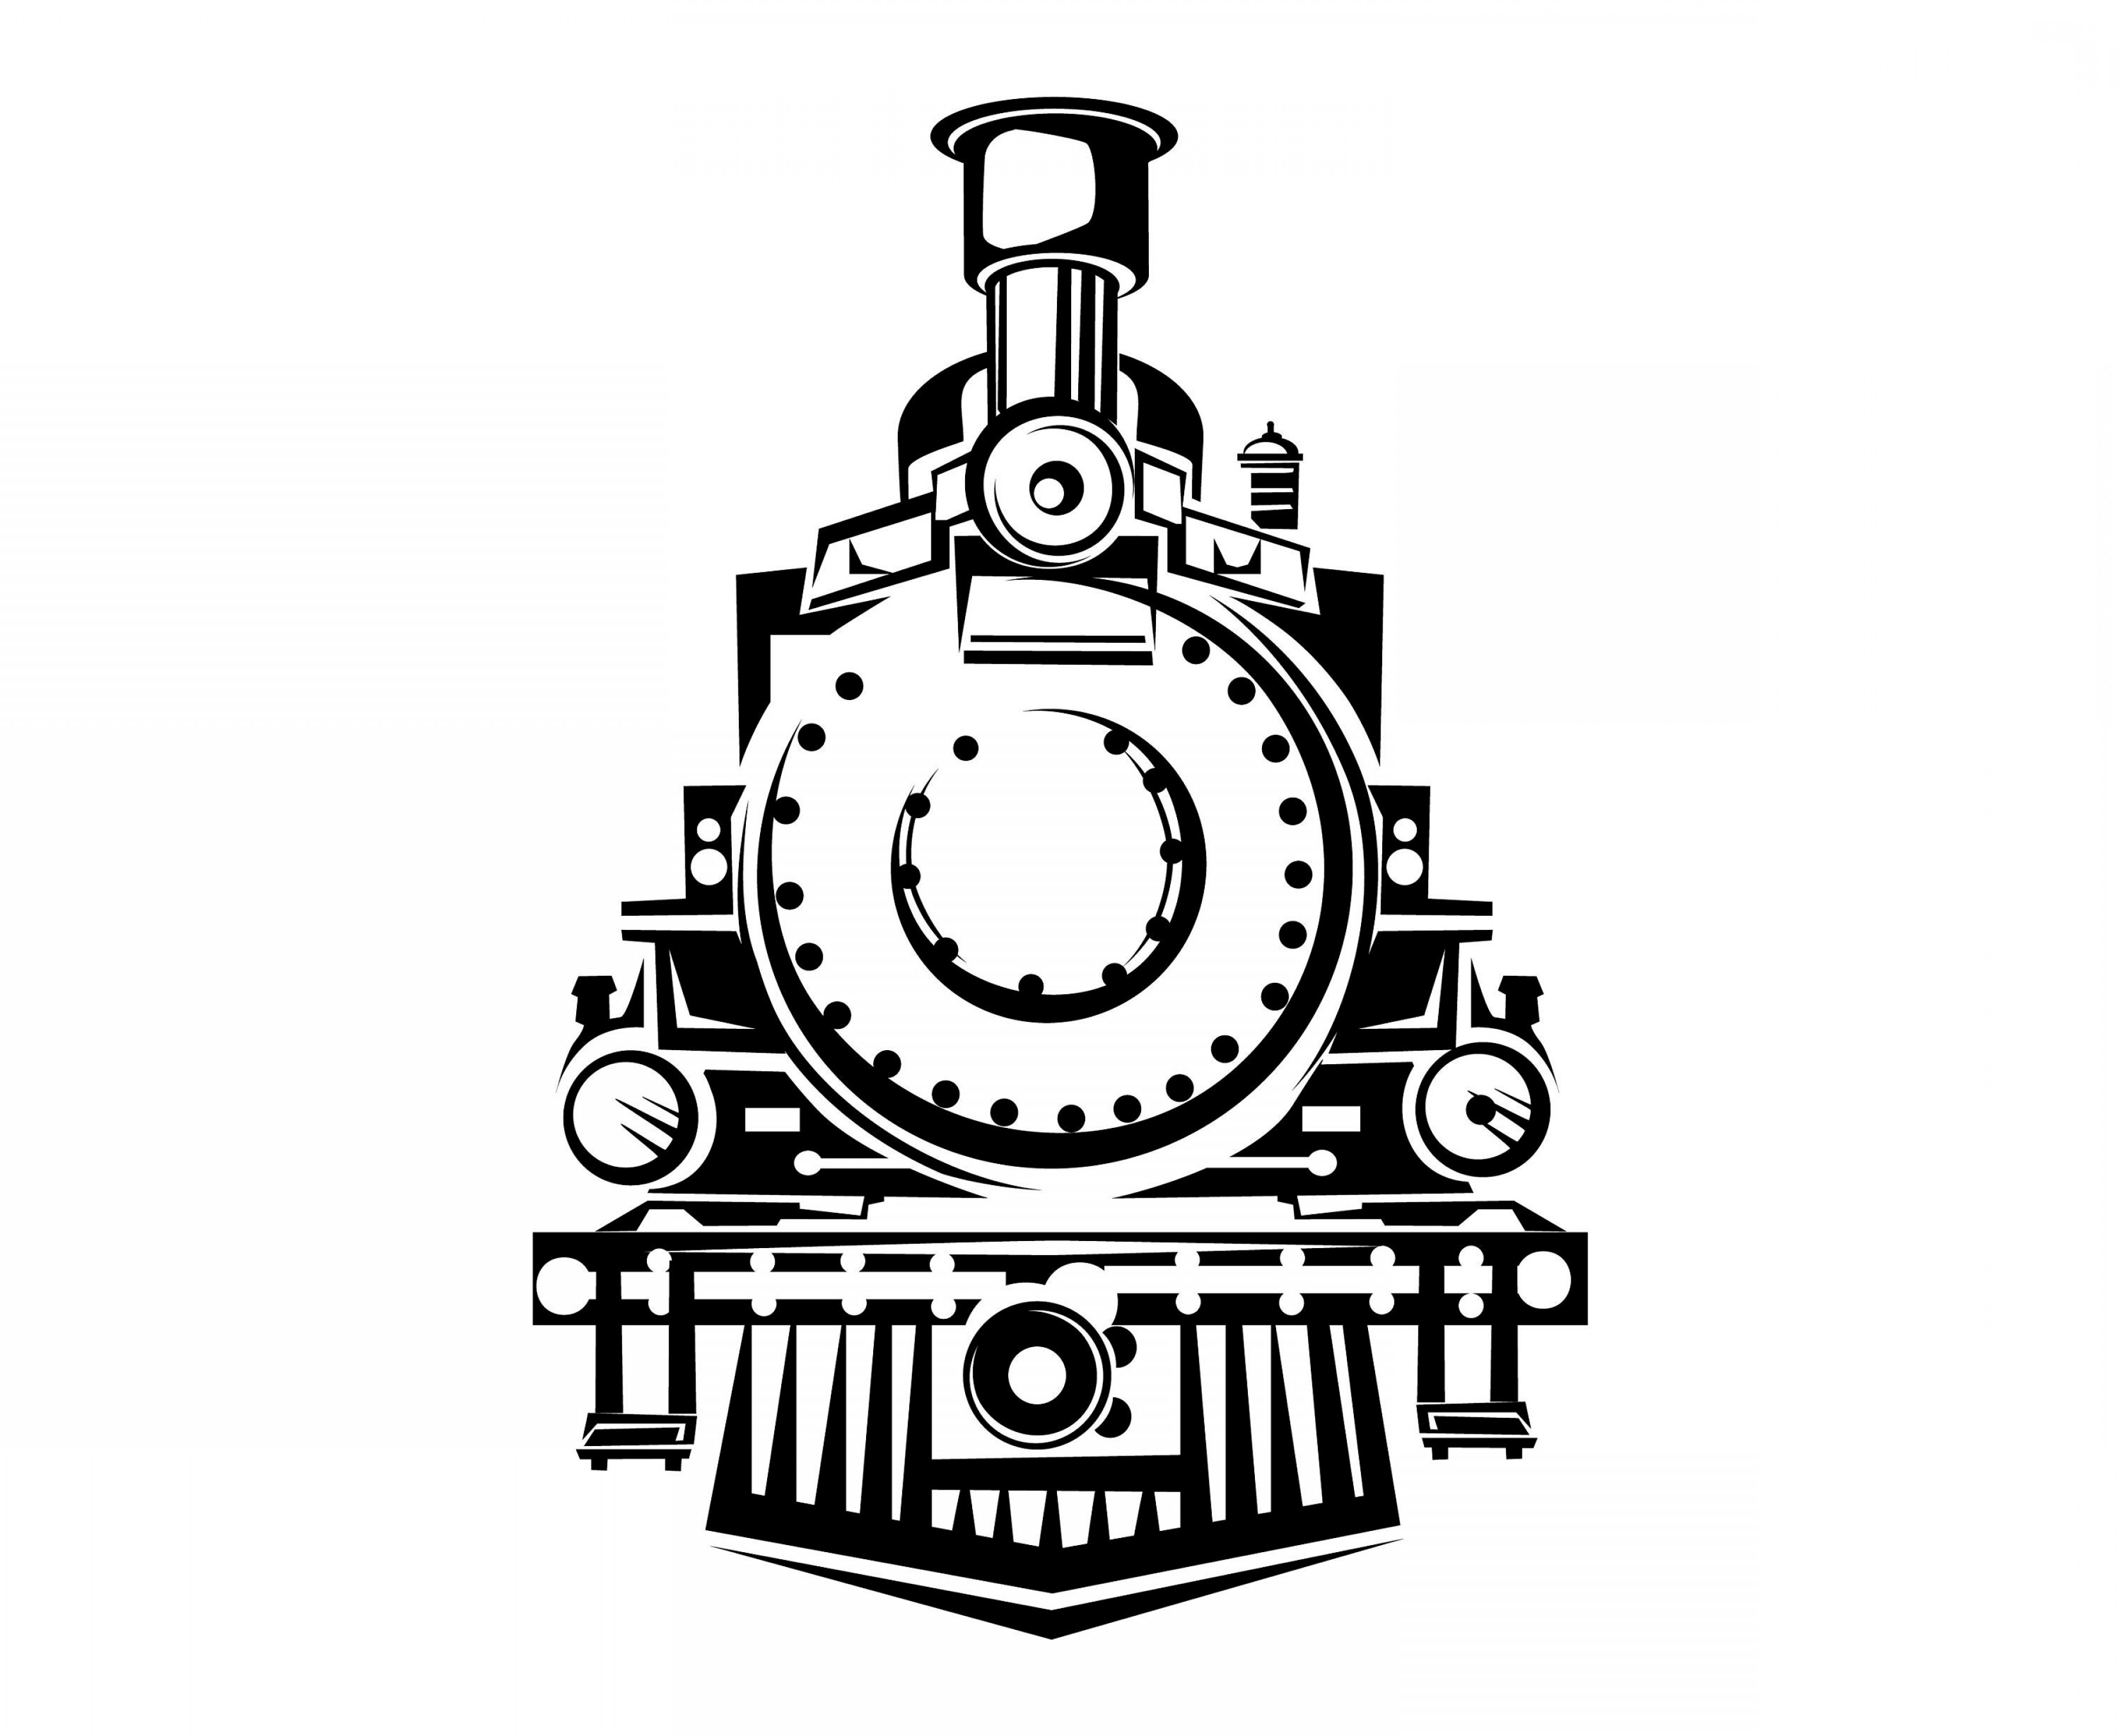 Train front view clipart clip art black and white download Steam Train Train Front View Vintage | CQRecords clip art black and white download